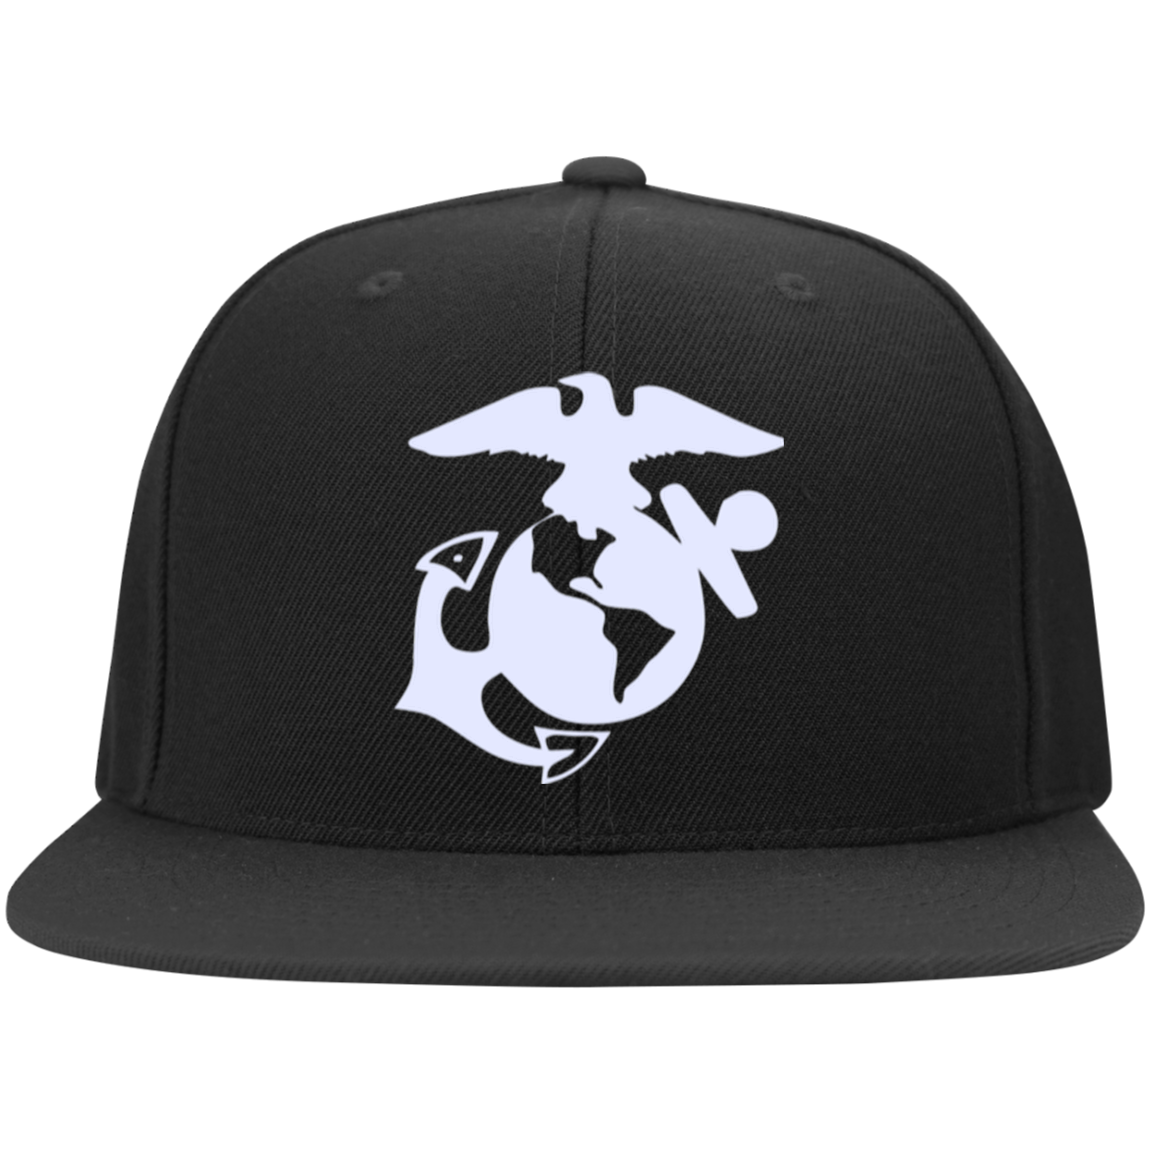 Pssst! Check out what's new! USMC (White Logo)... Grab